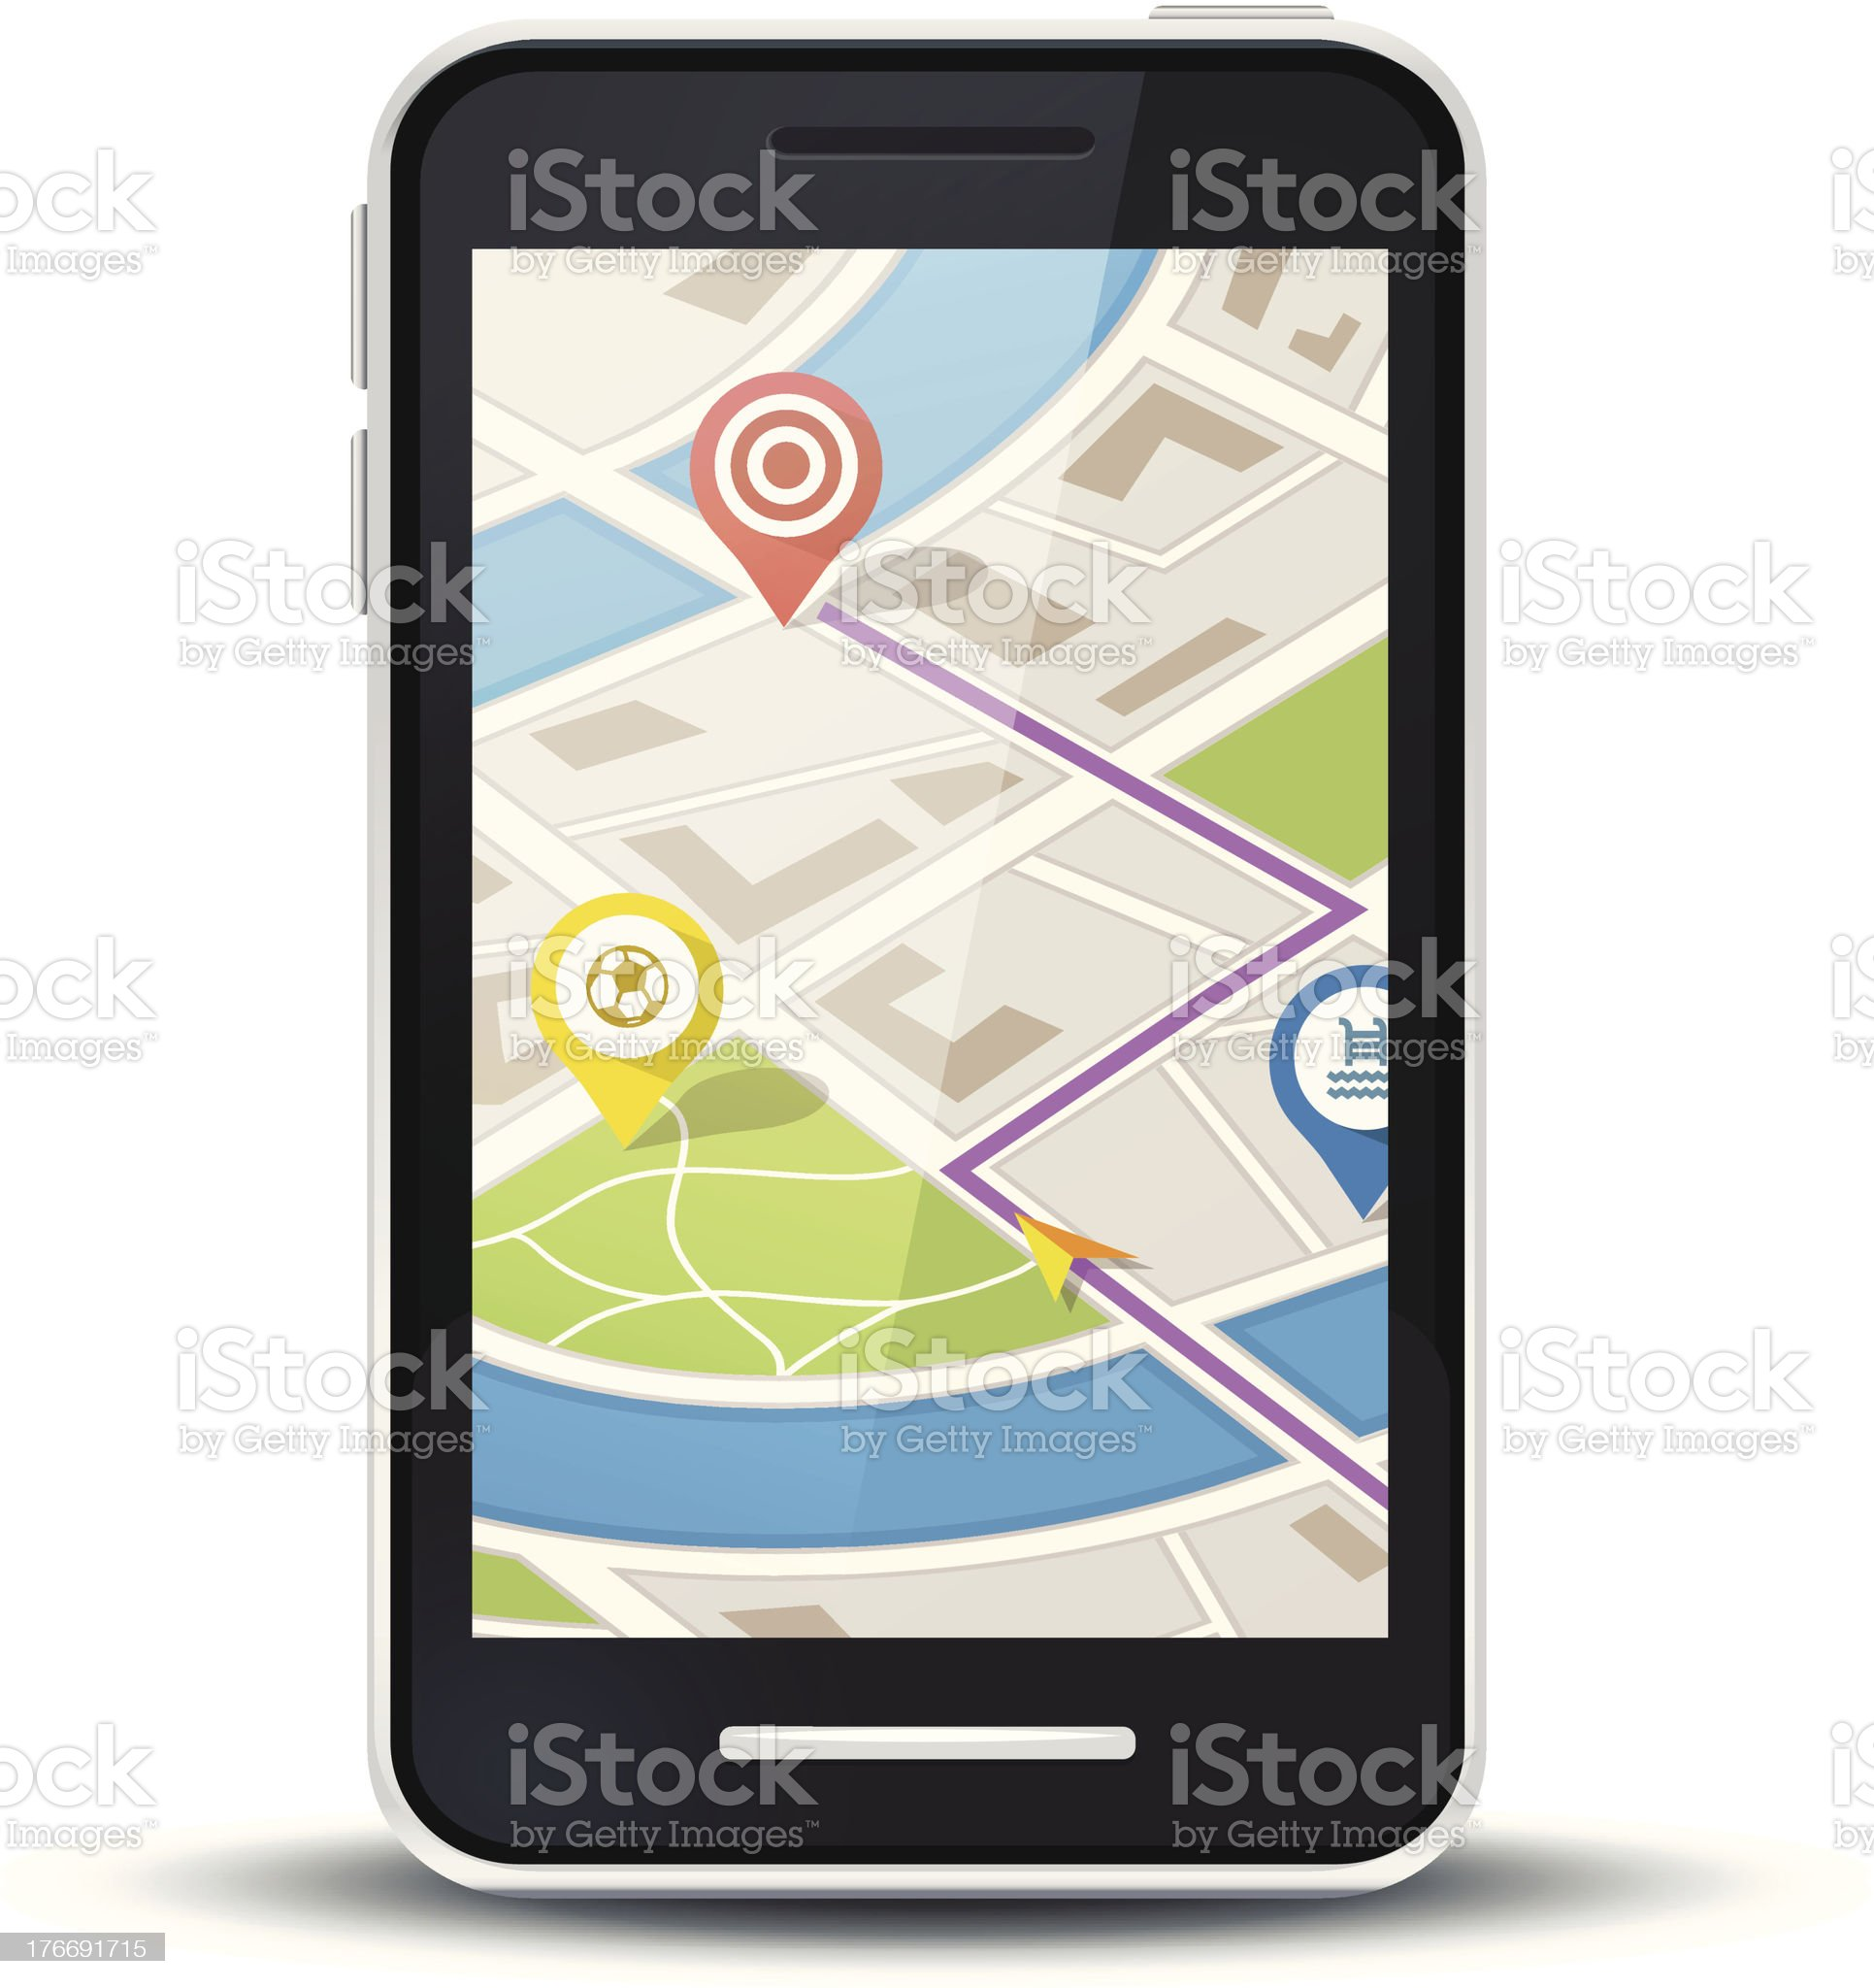 mobile phone with gps map application royalty-free stock vector art